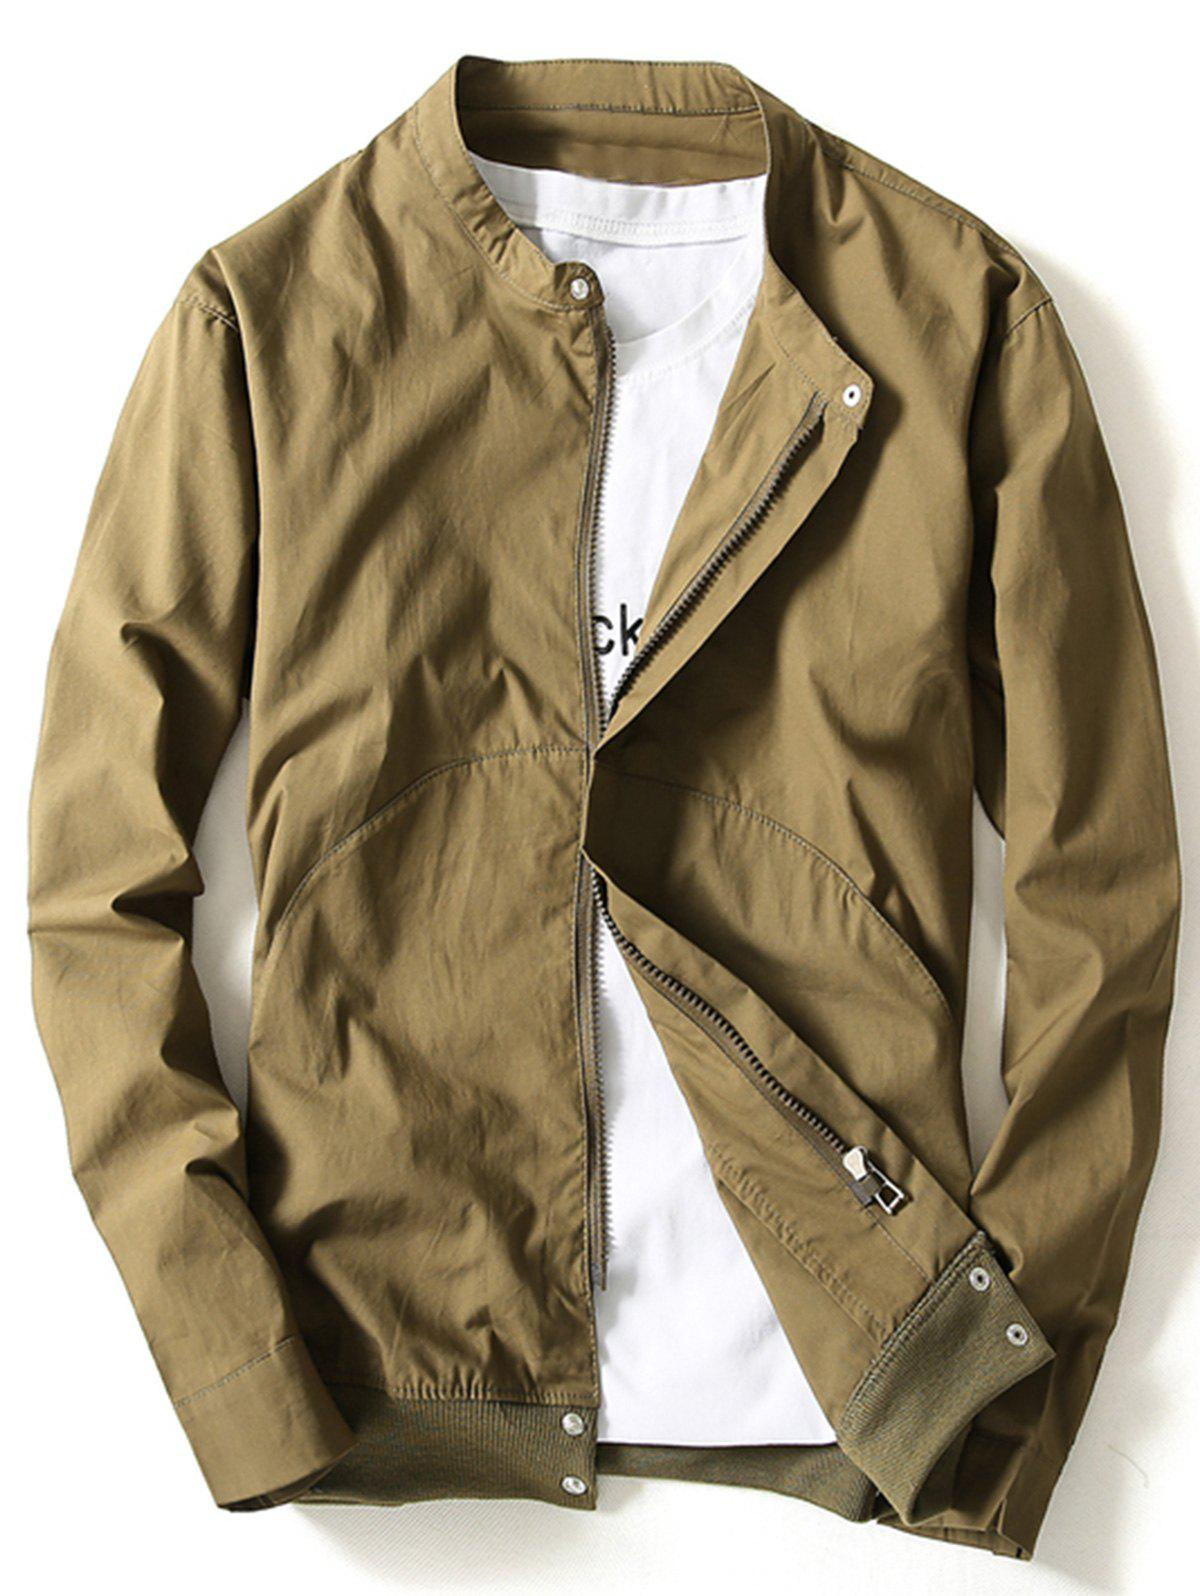 Store Insert Pocket Lightweight Jacket